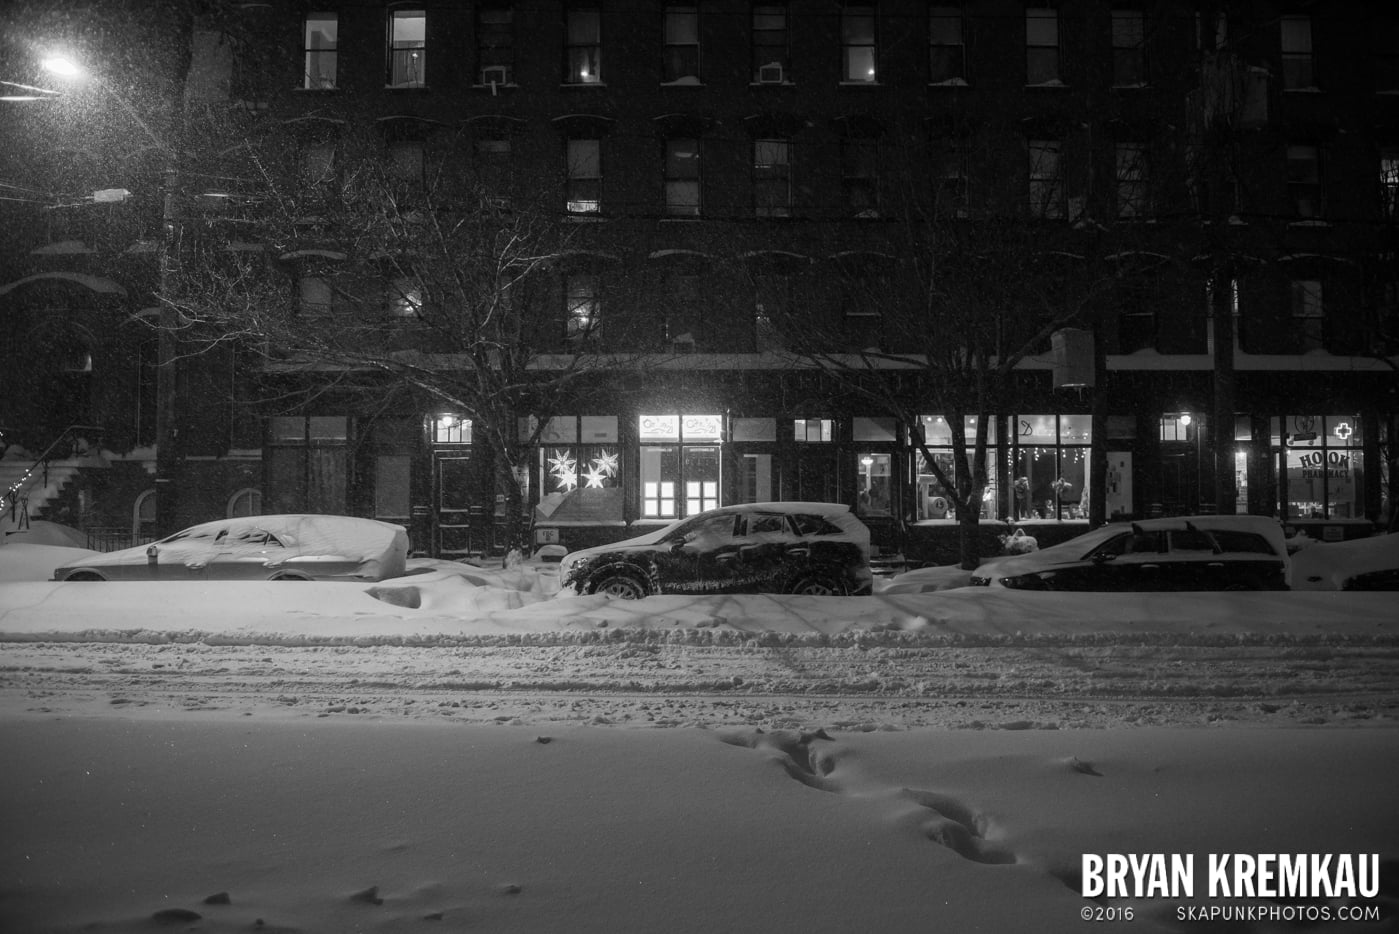 Blizzard 2016 in Jersey City, NJ - 1.23.16 (17)